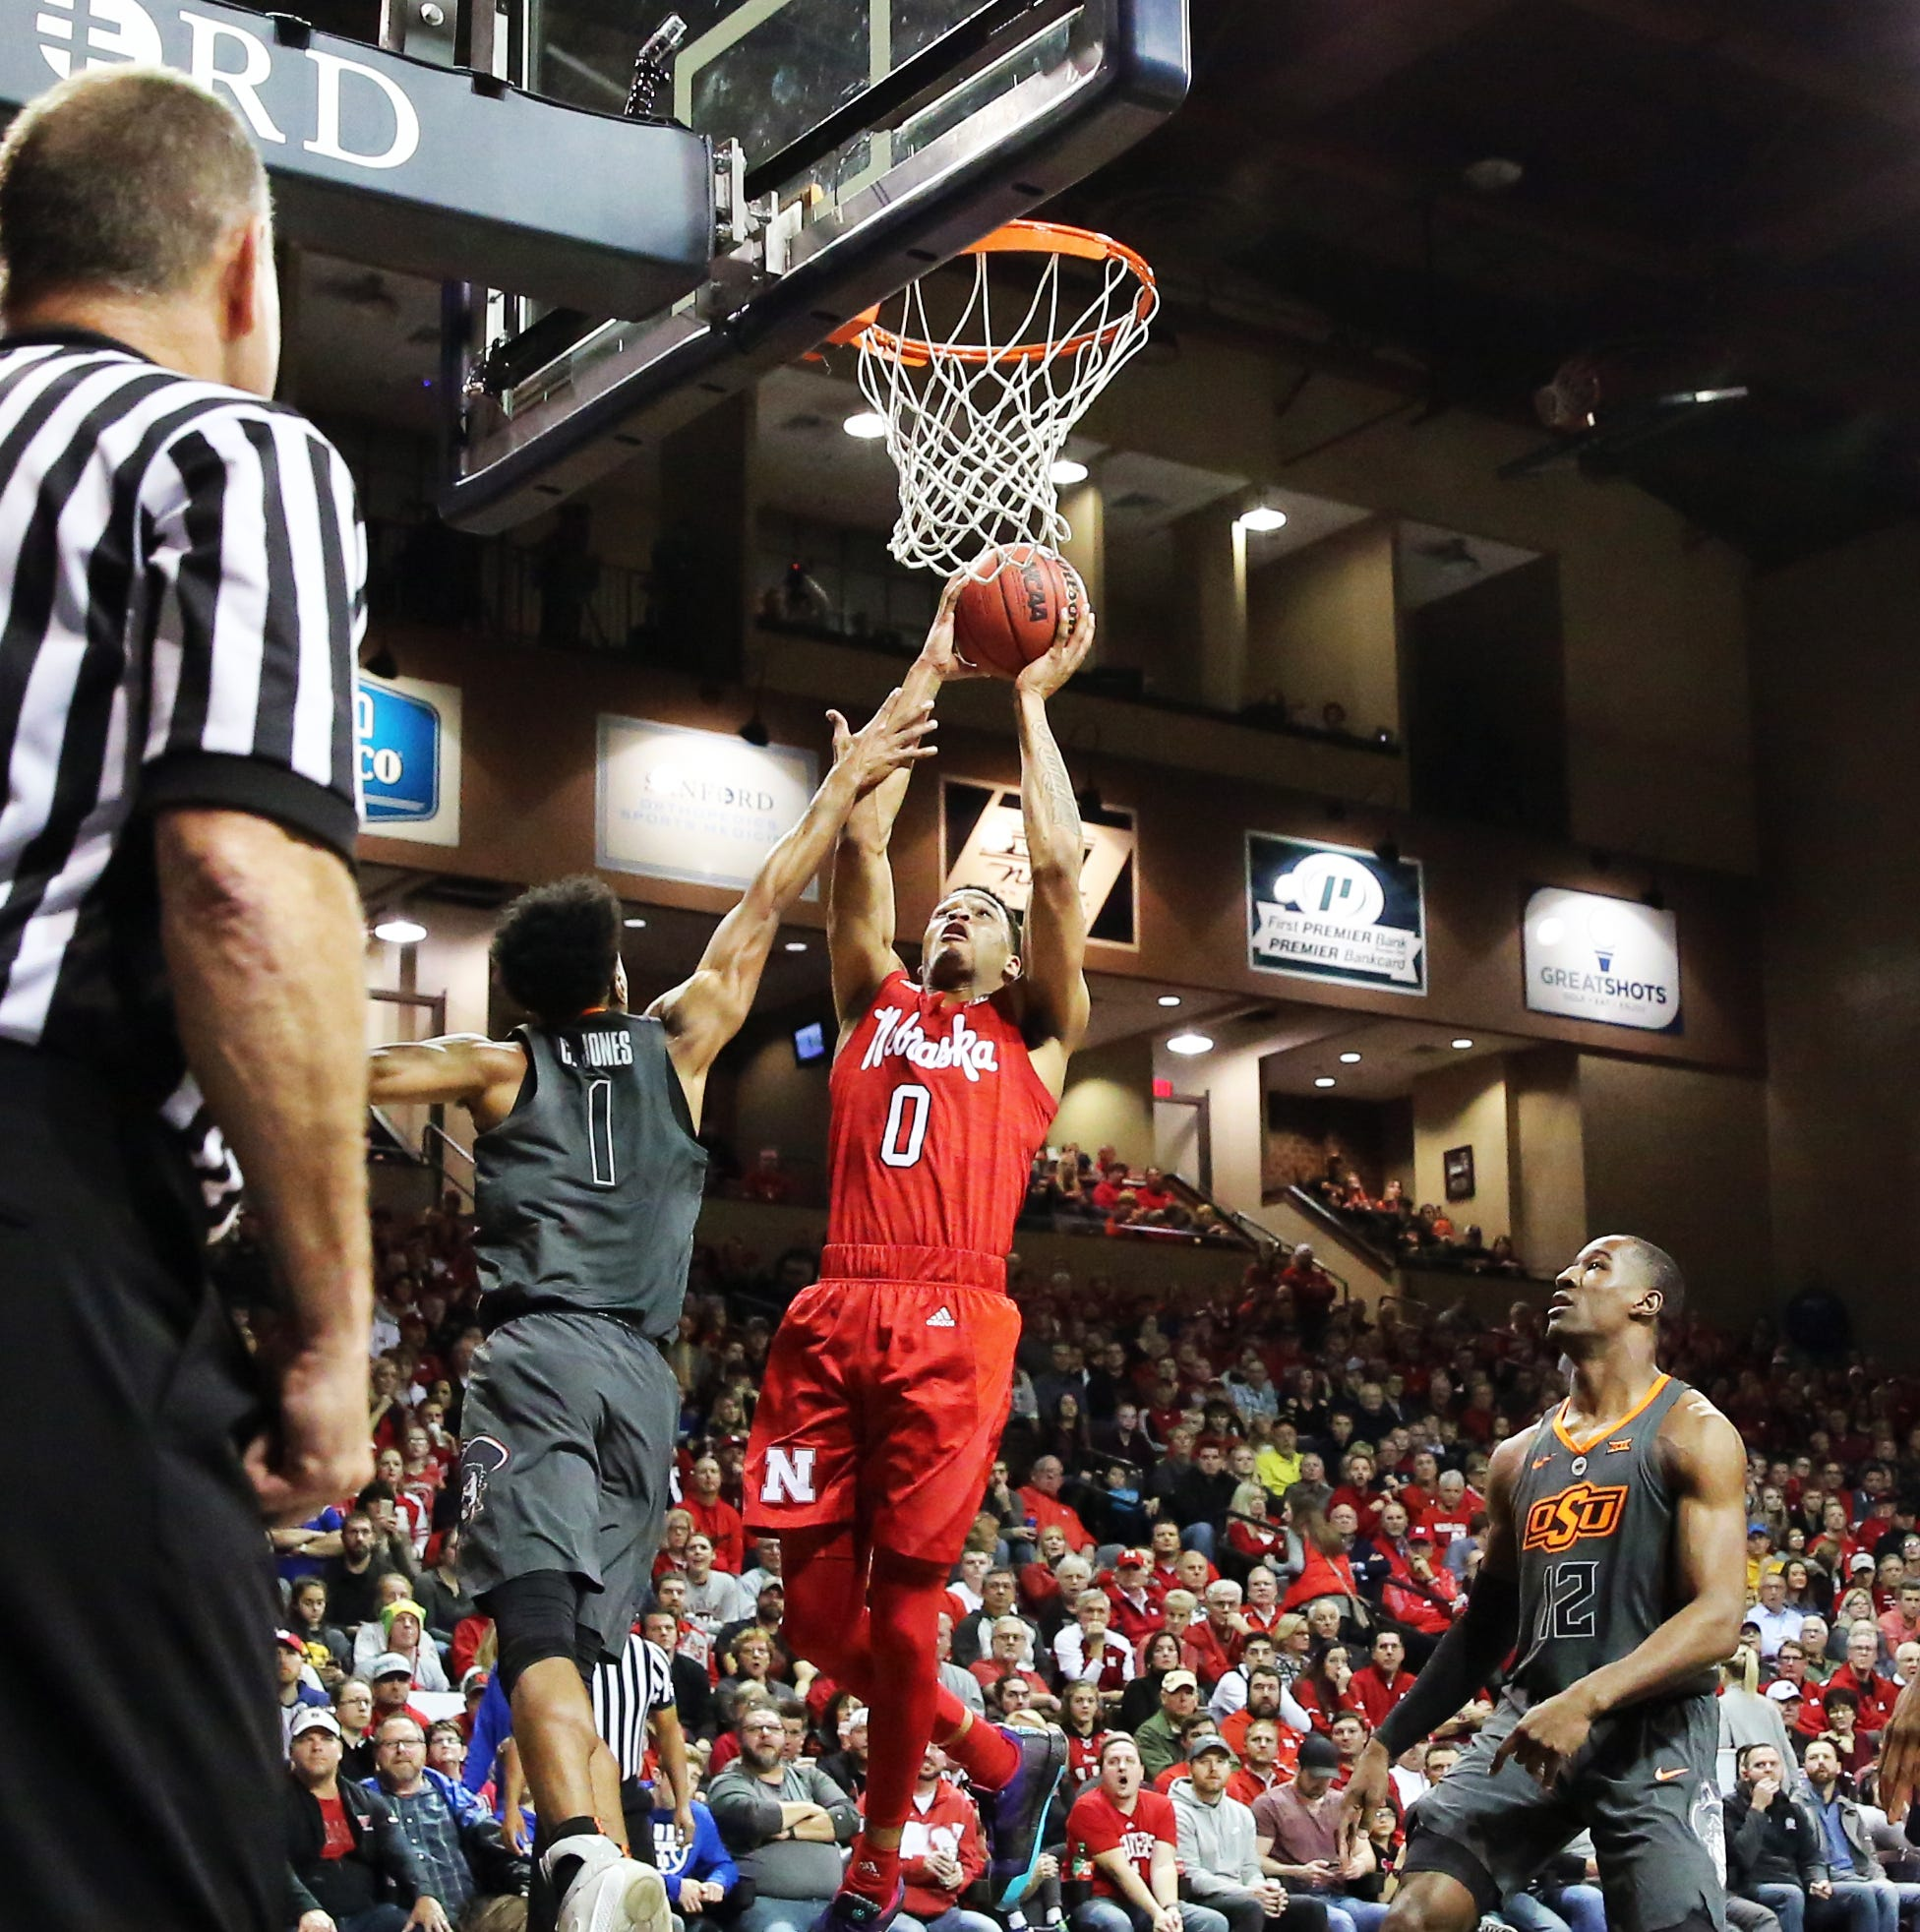 Nebraska rolls over Oklahoma State at Sanford Pentagon